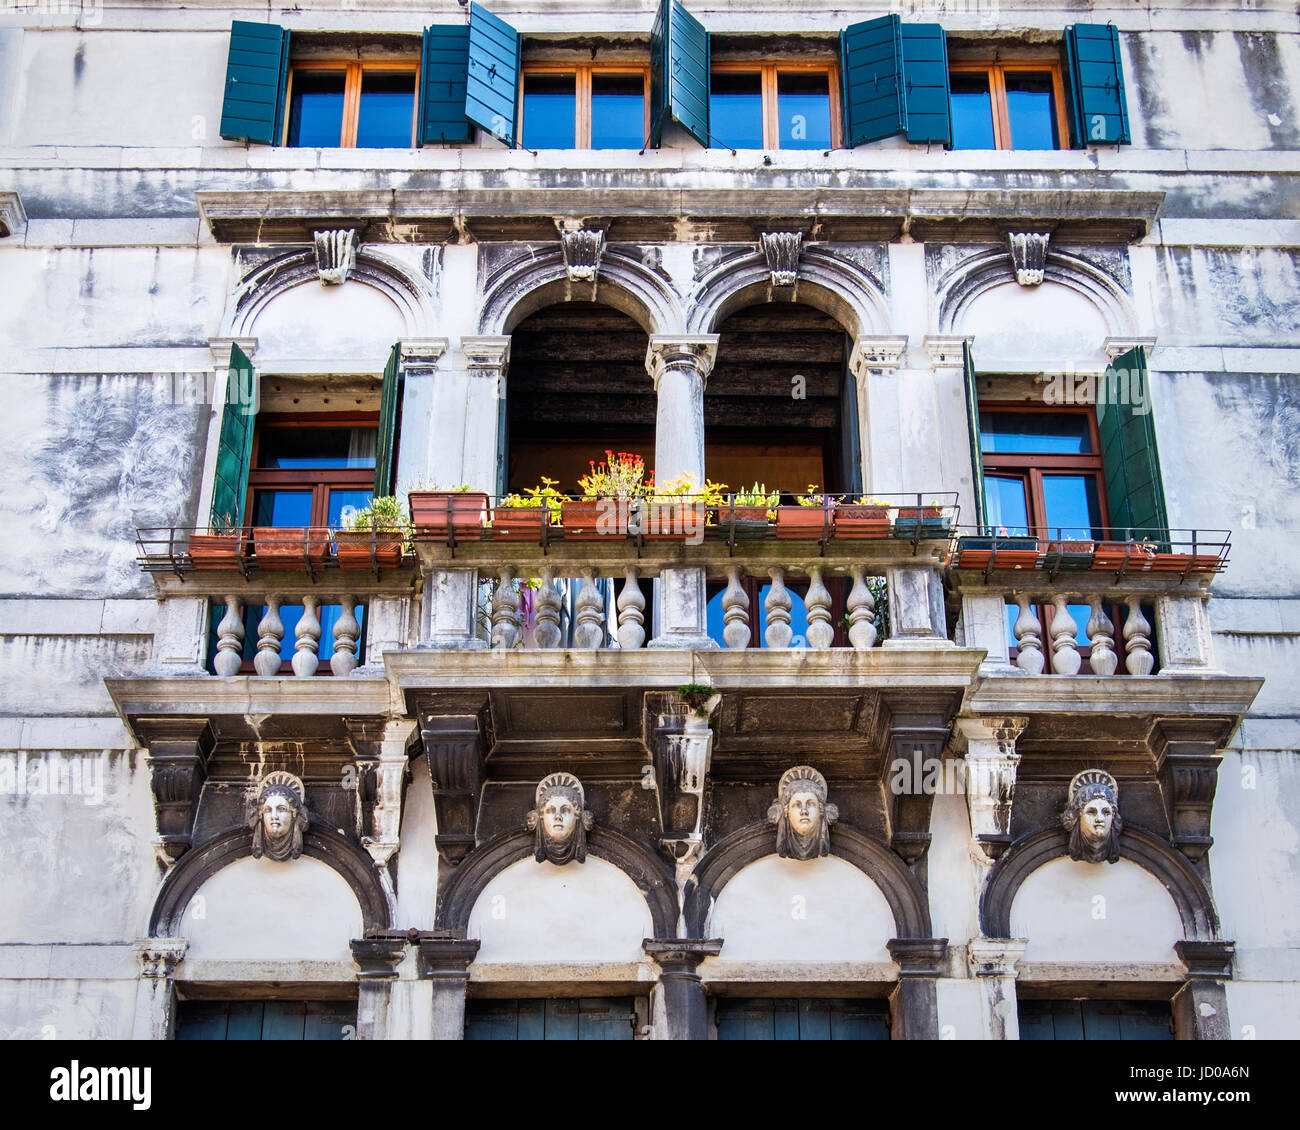 Venice Italy.Venetian weathered building exterior facade with elegant arched windows,balcony,pot plants and sculptural - Stock Image